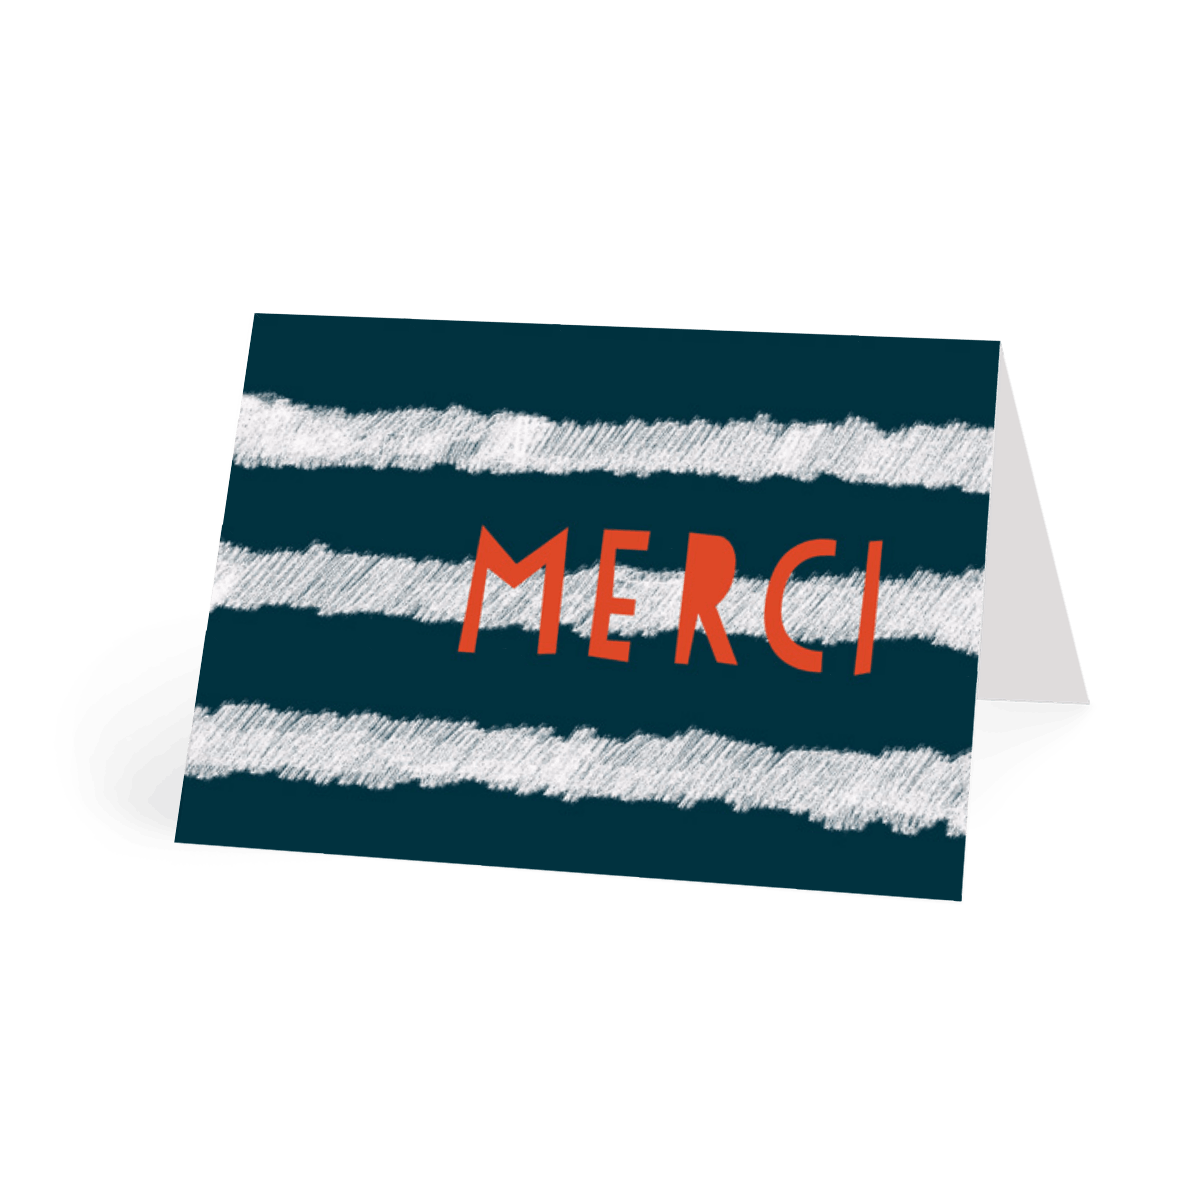 Https%3a%2f%2fwww.papier.com%2fproduct image%2f29277%2f14%2fstriped merci 7354 front 1507913207.png?ixlib=rb 1.1